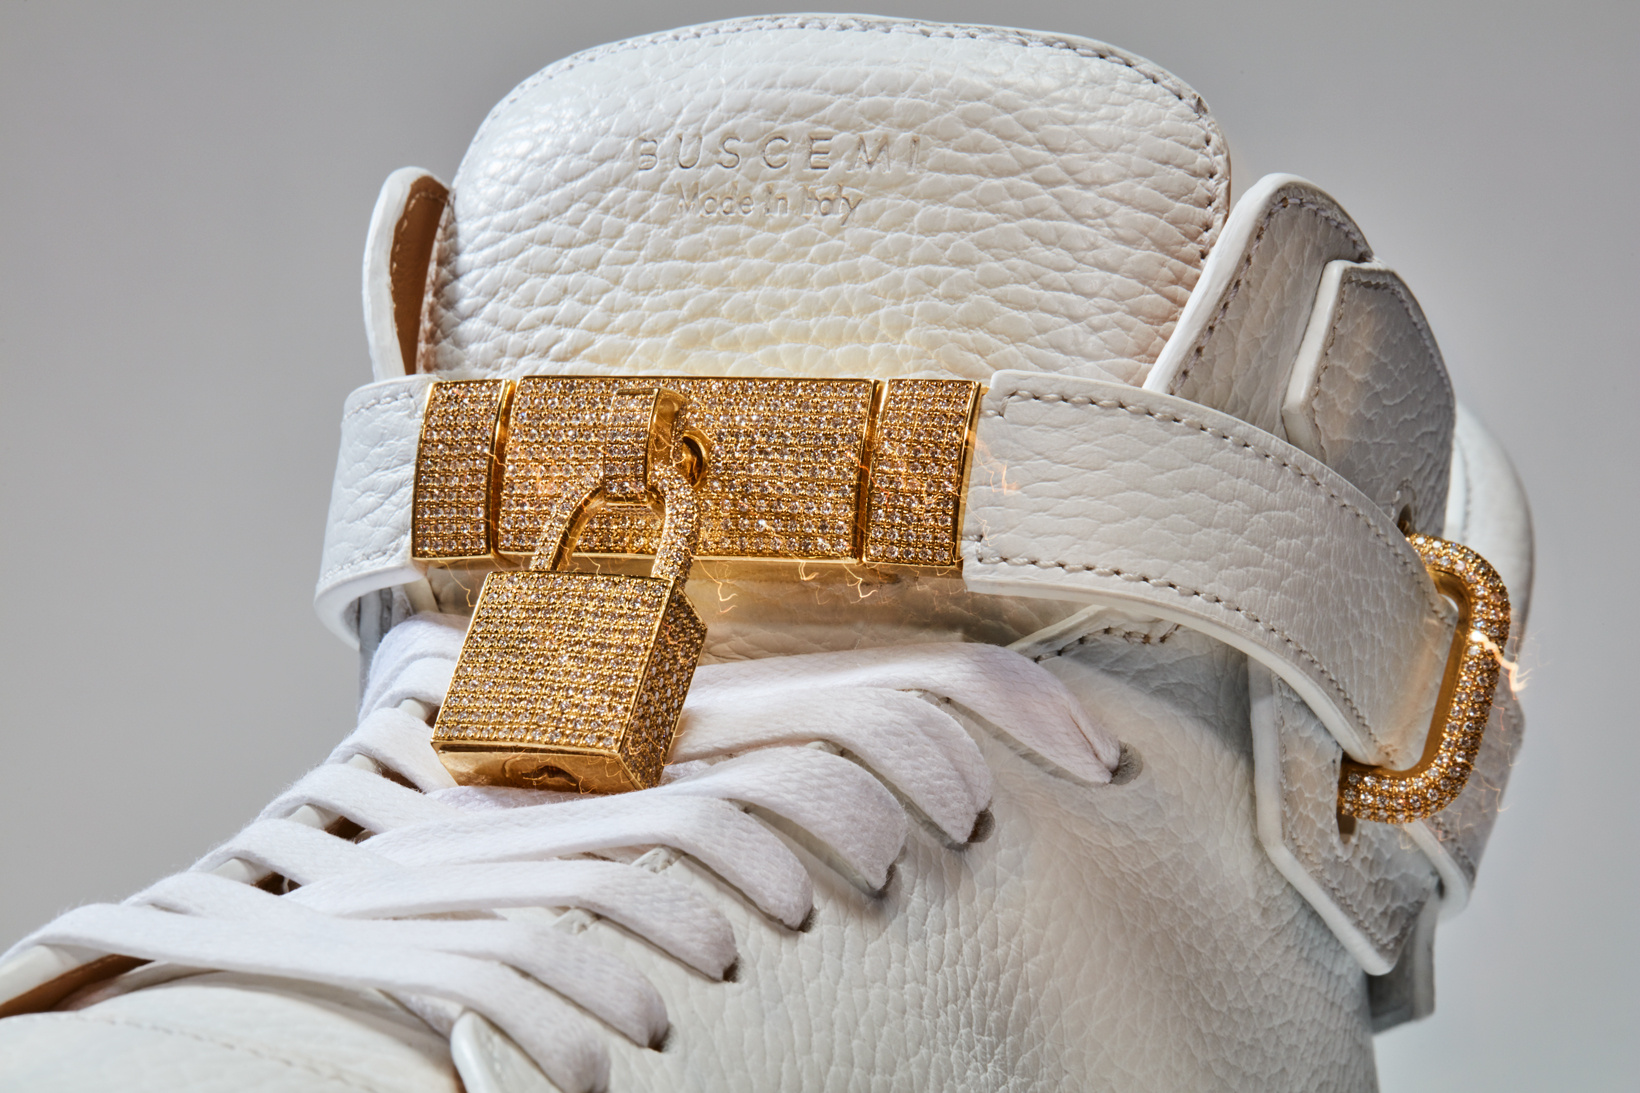 buscemi-100mm-diamond-sneaker-2